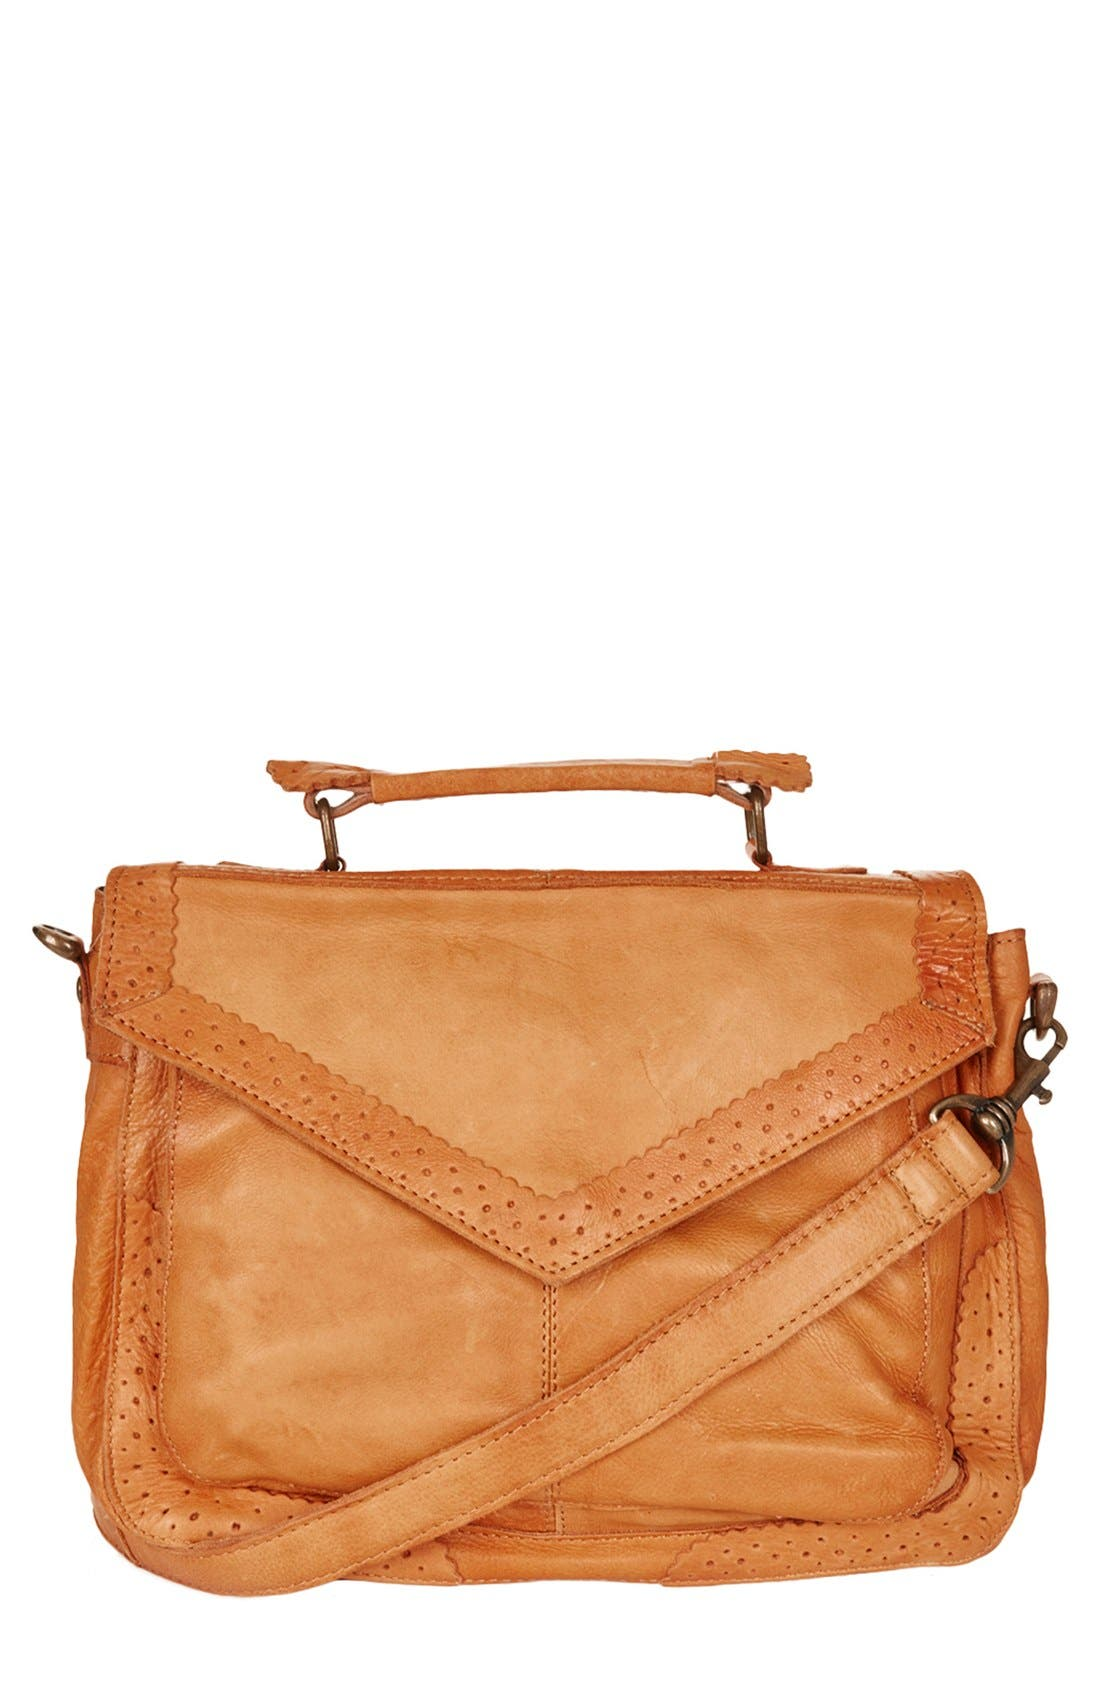 Main Image - Topshop 'Brogue' Leather Satchel